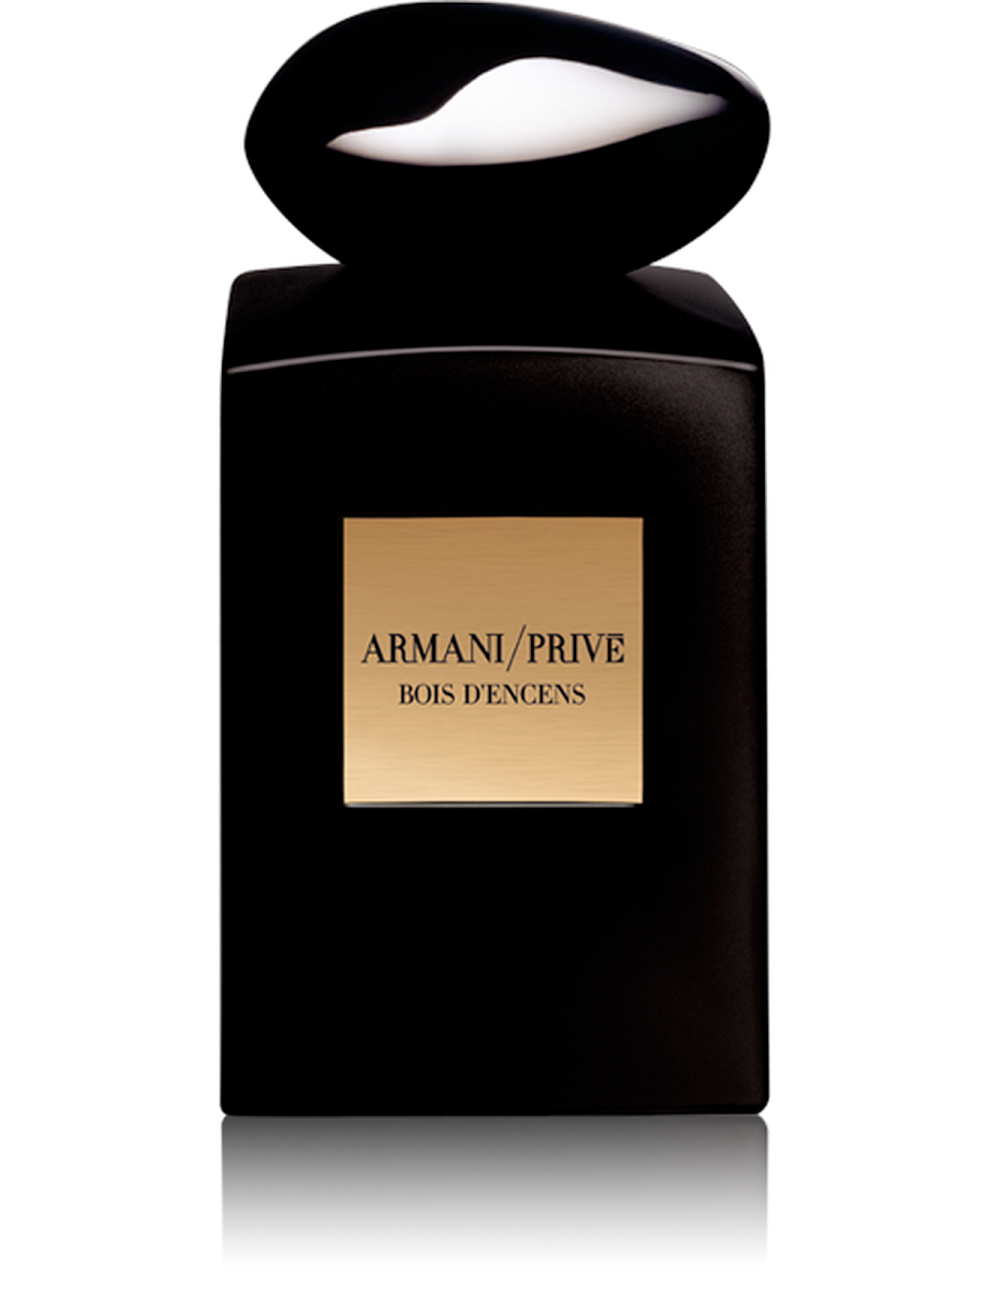 BOIS D'ENCENS by ARMANI/Prive 5ml Travel Spray Incense Pepper Vetiver Perfume